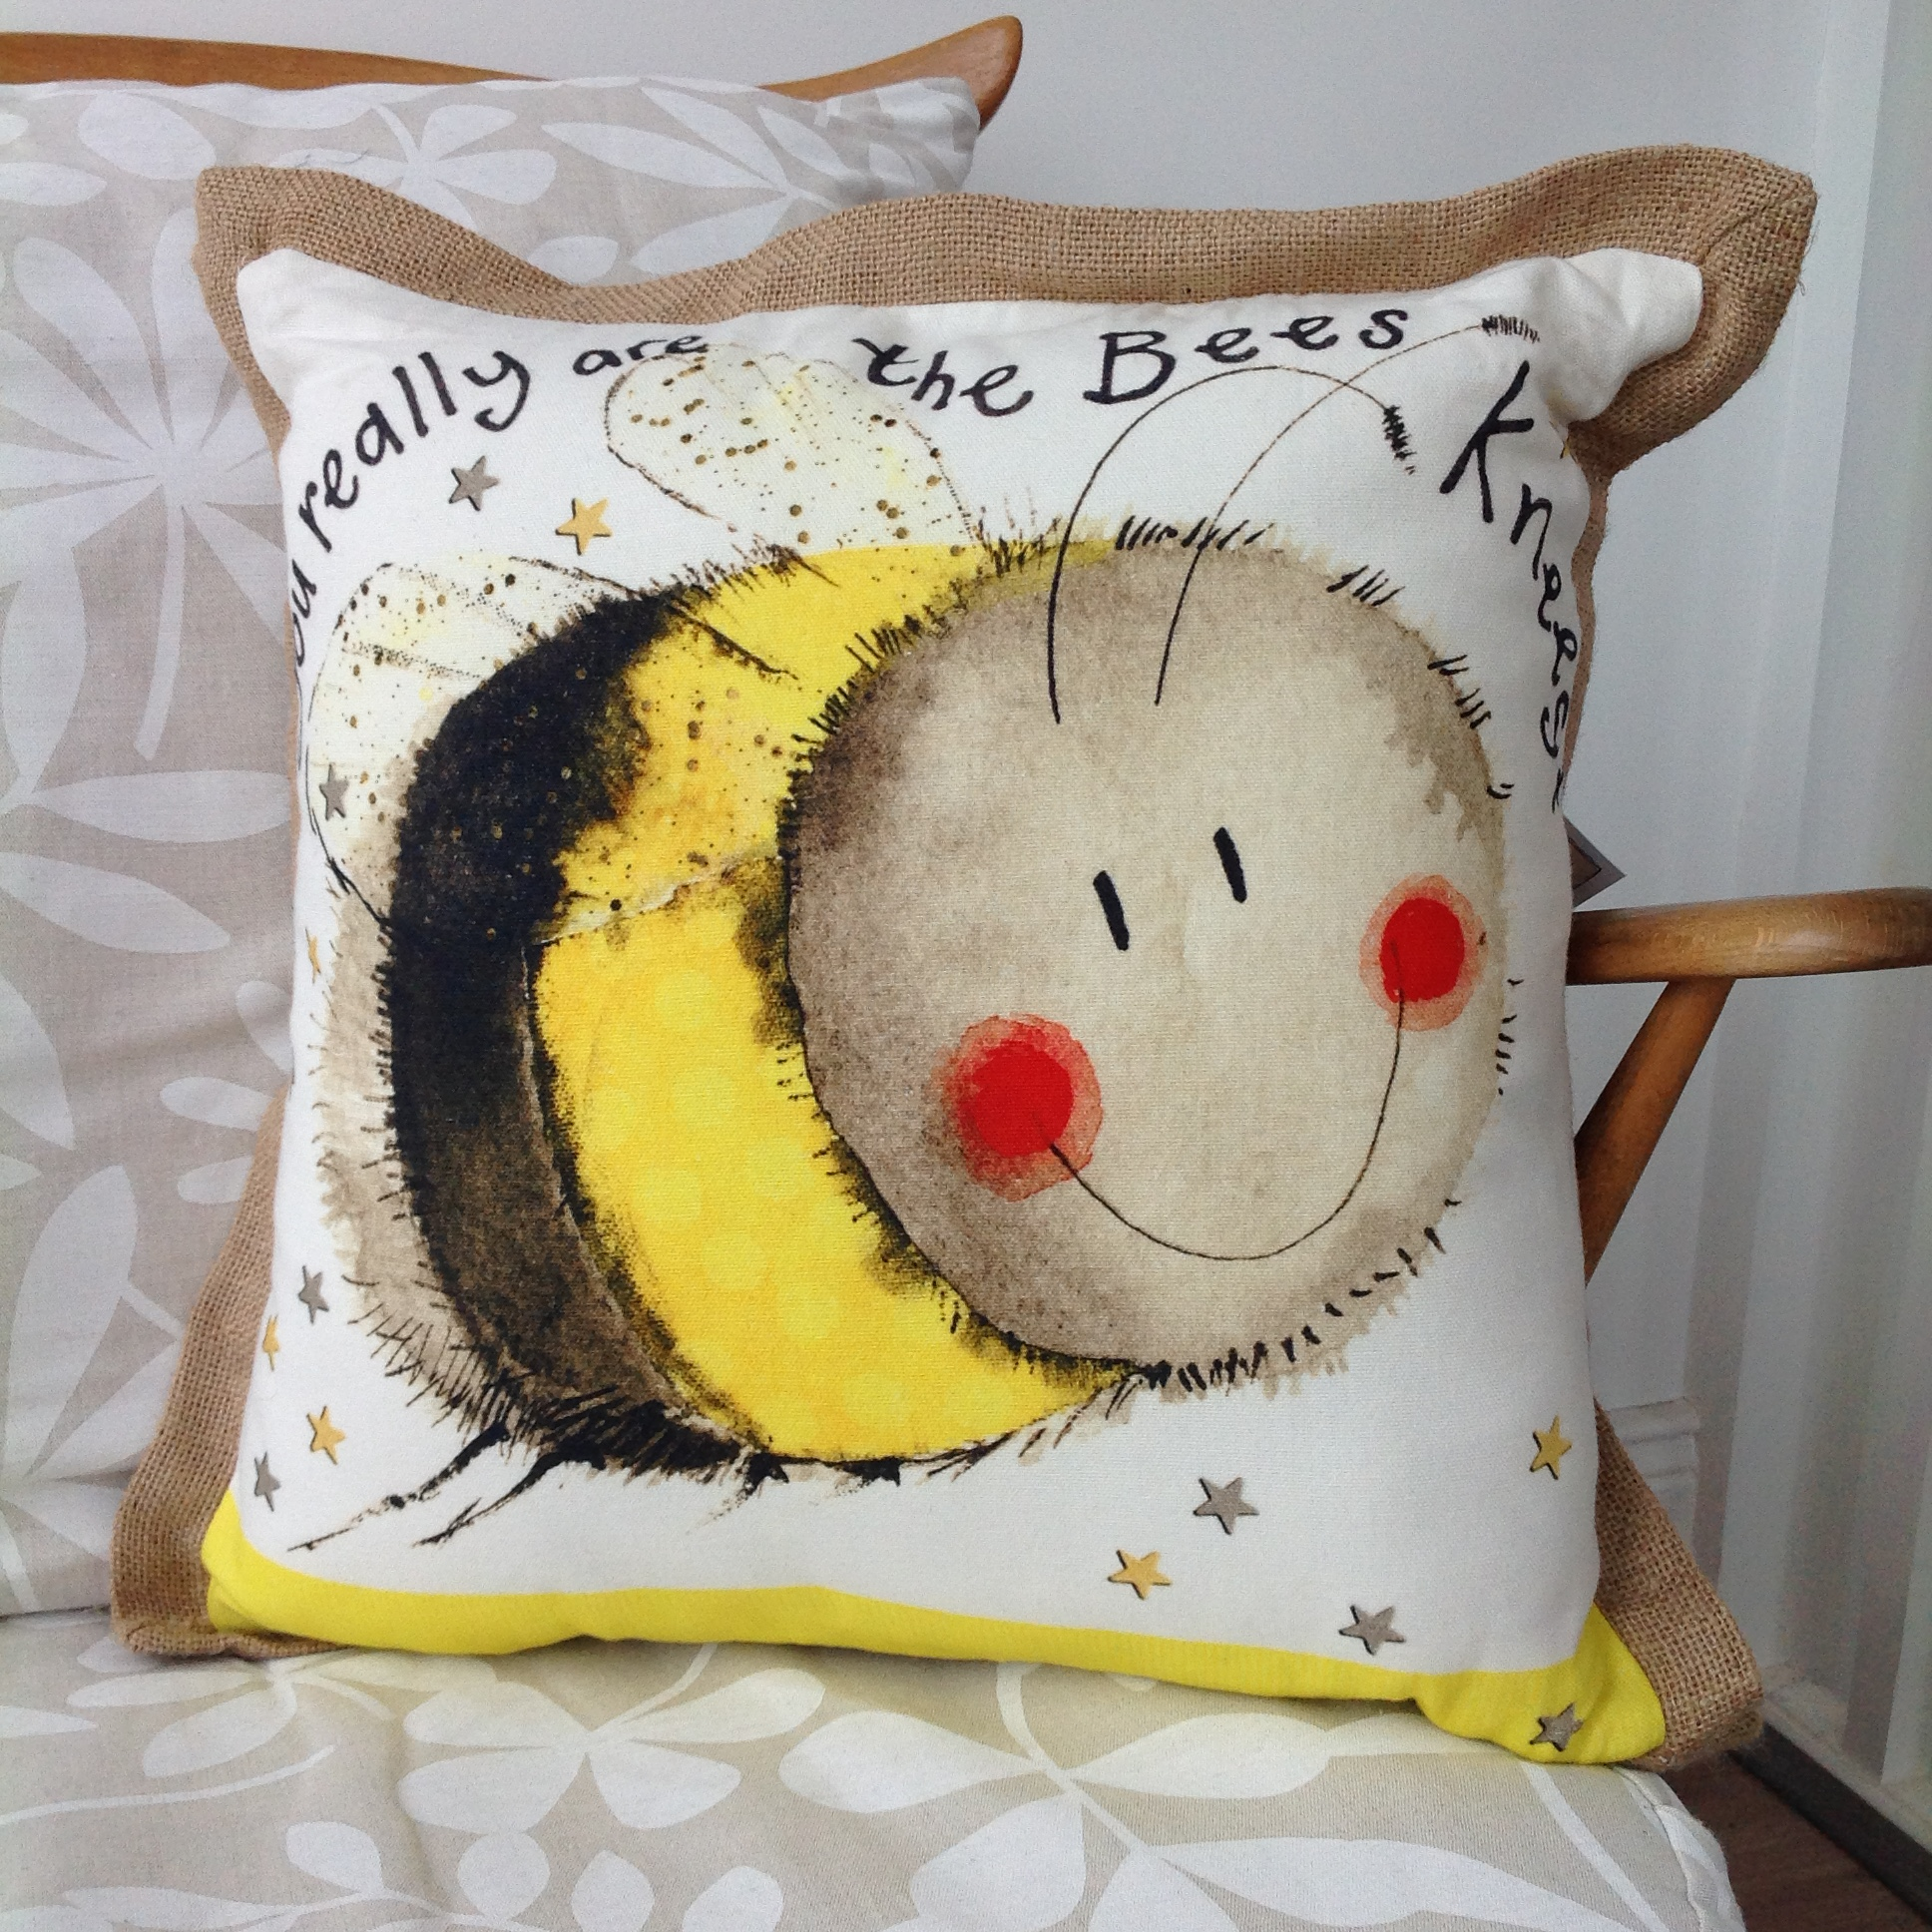 catalog/products/cushions/bees-knees-cushion.JPG